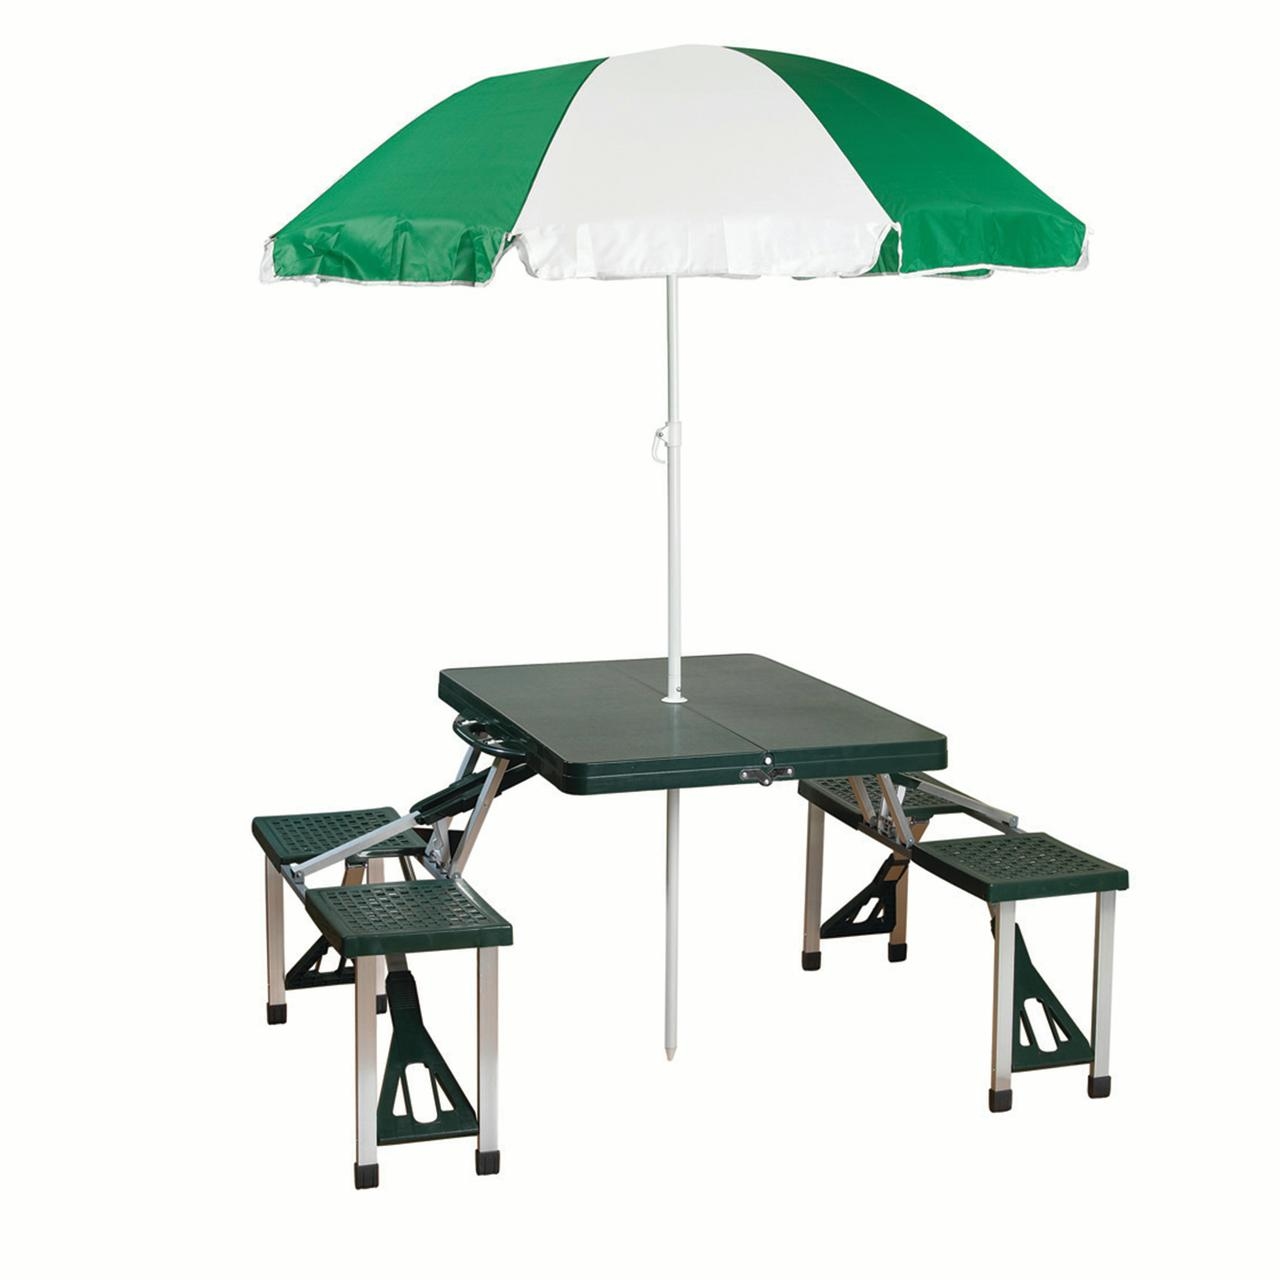 Stansport Camp Picnic Table And Umbrella Combo Pack Walmart Com